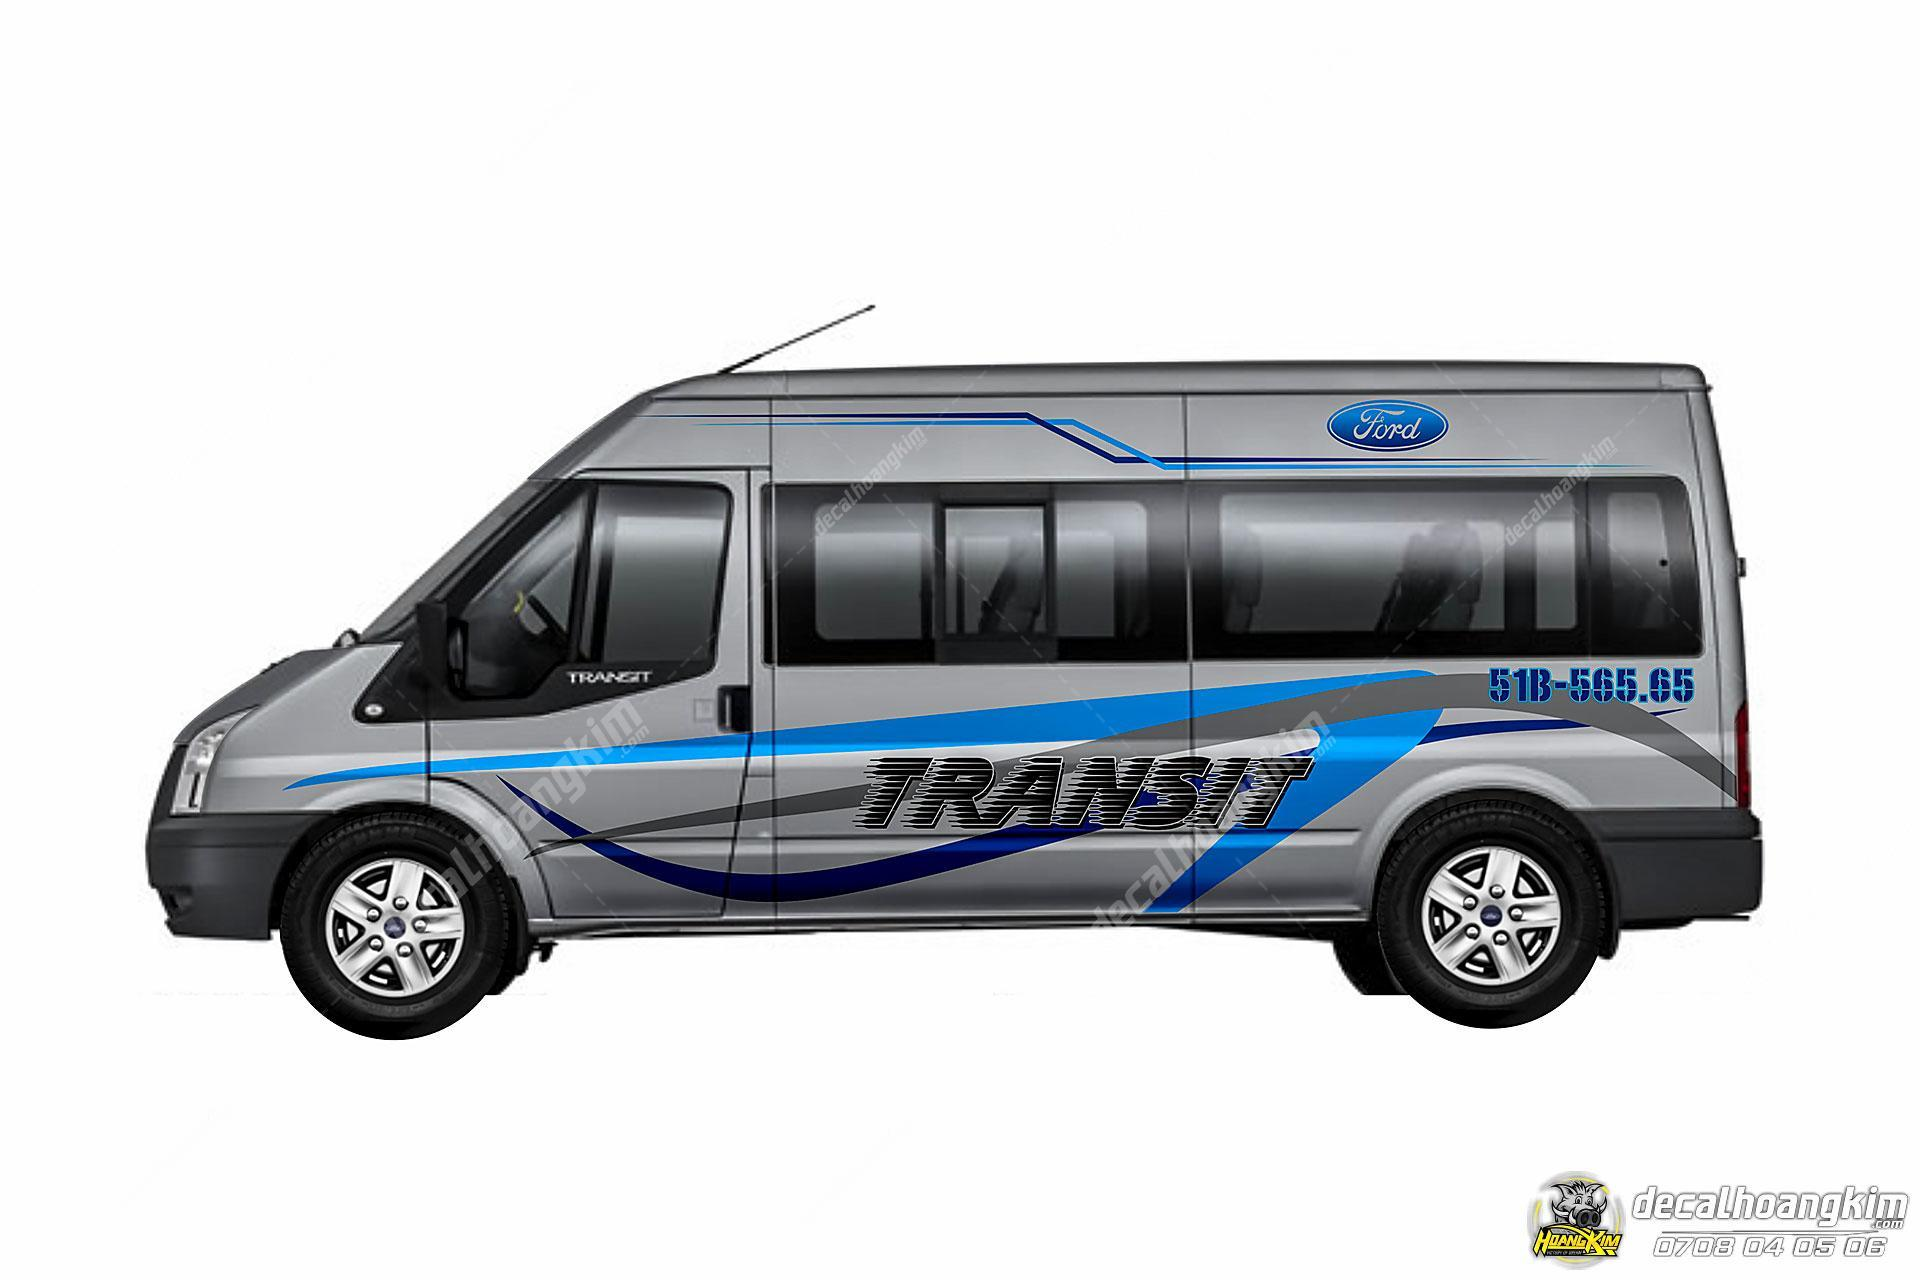 https://hoangkims5.blob.core.windows.net/otohoangkimzag152hg18/Tem-Xe-Ford-Transit-FTS049.jpg